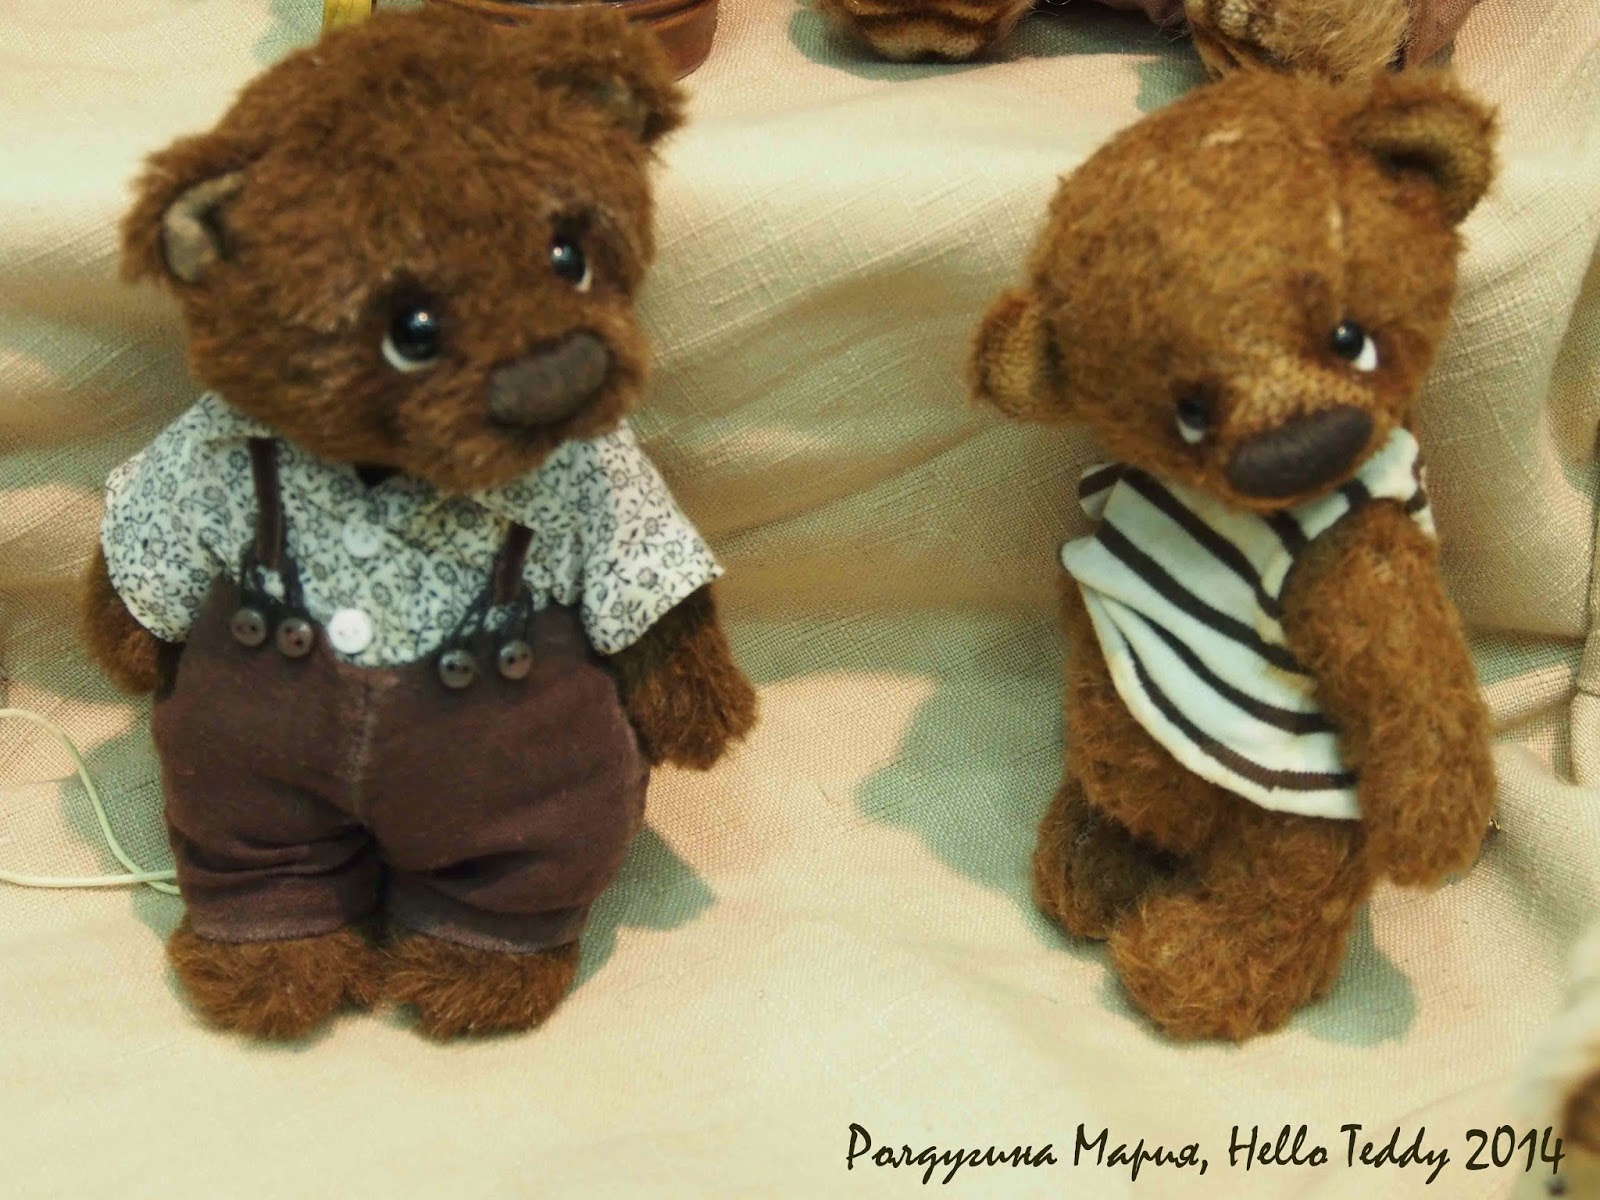 Hello Teddy 2014